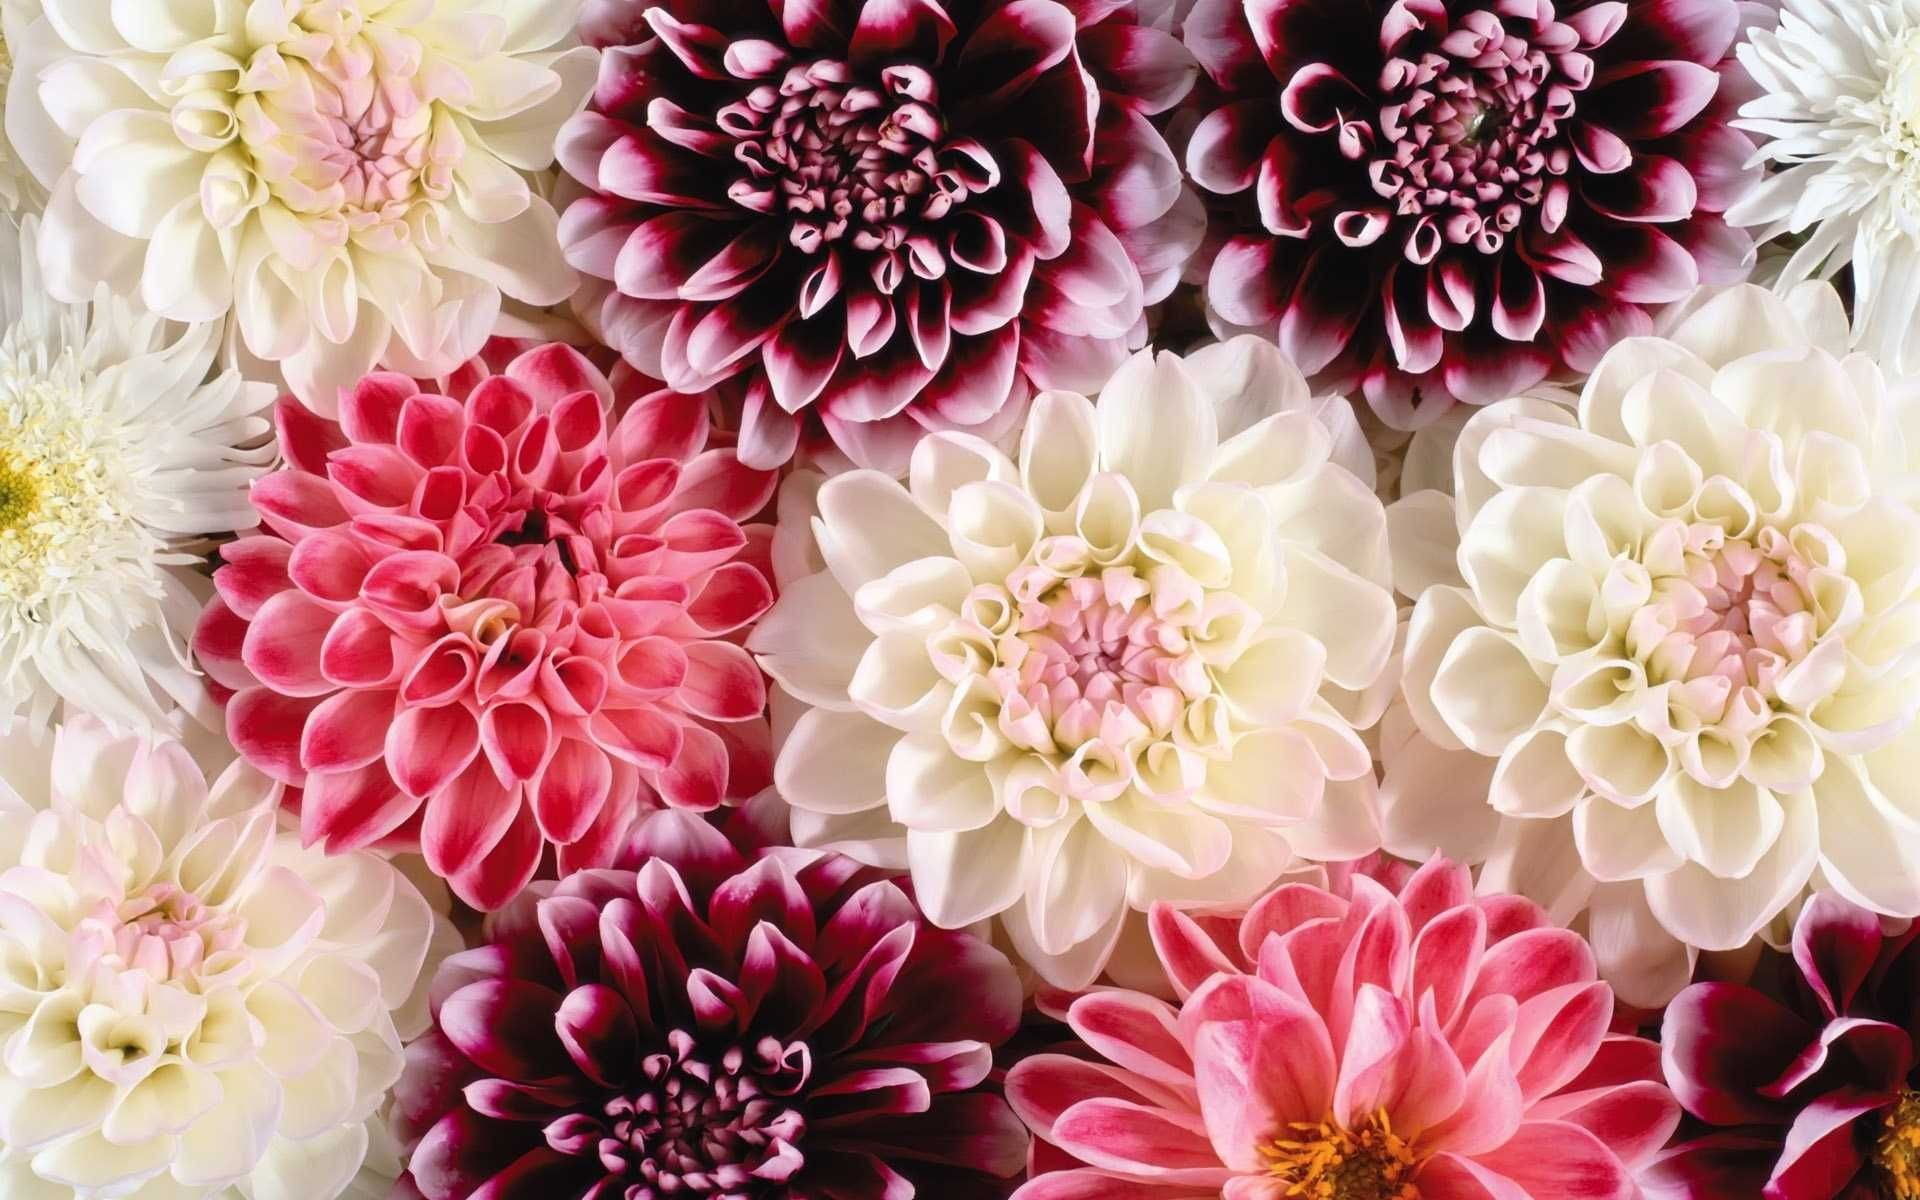 Res: 1920x1200, Hd Flower Wallpapers HD Hd Vintage Background Floral Tumblr Tumblr .